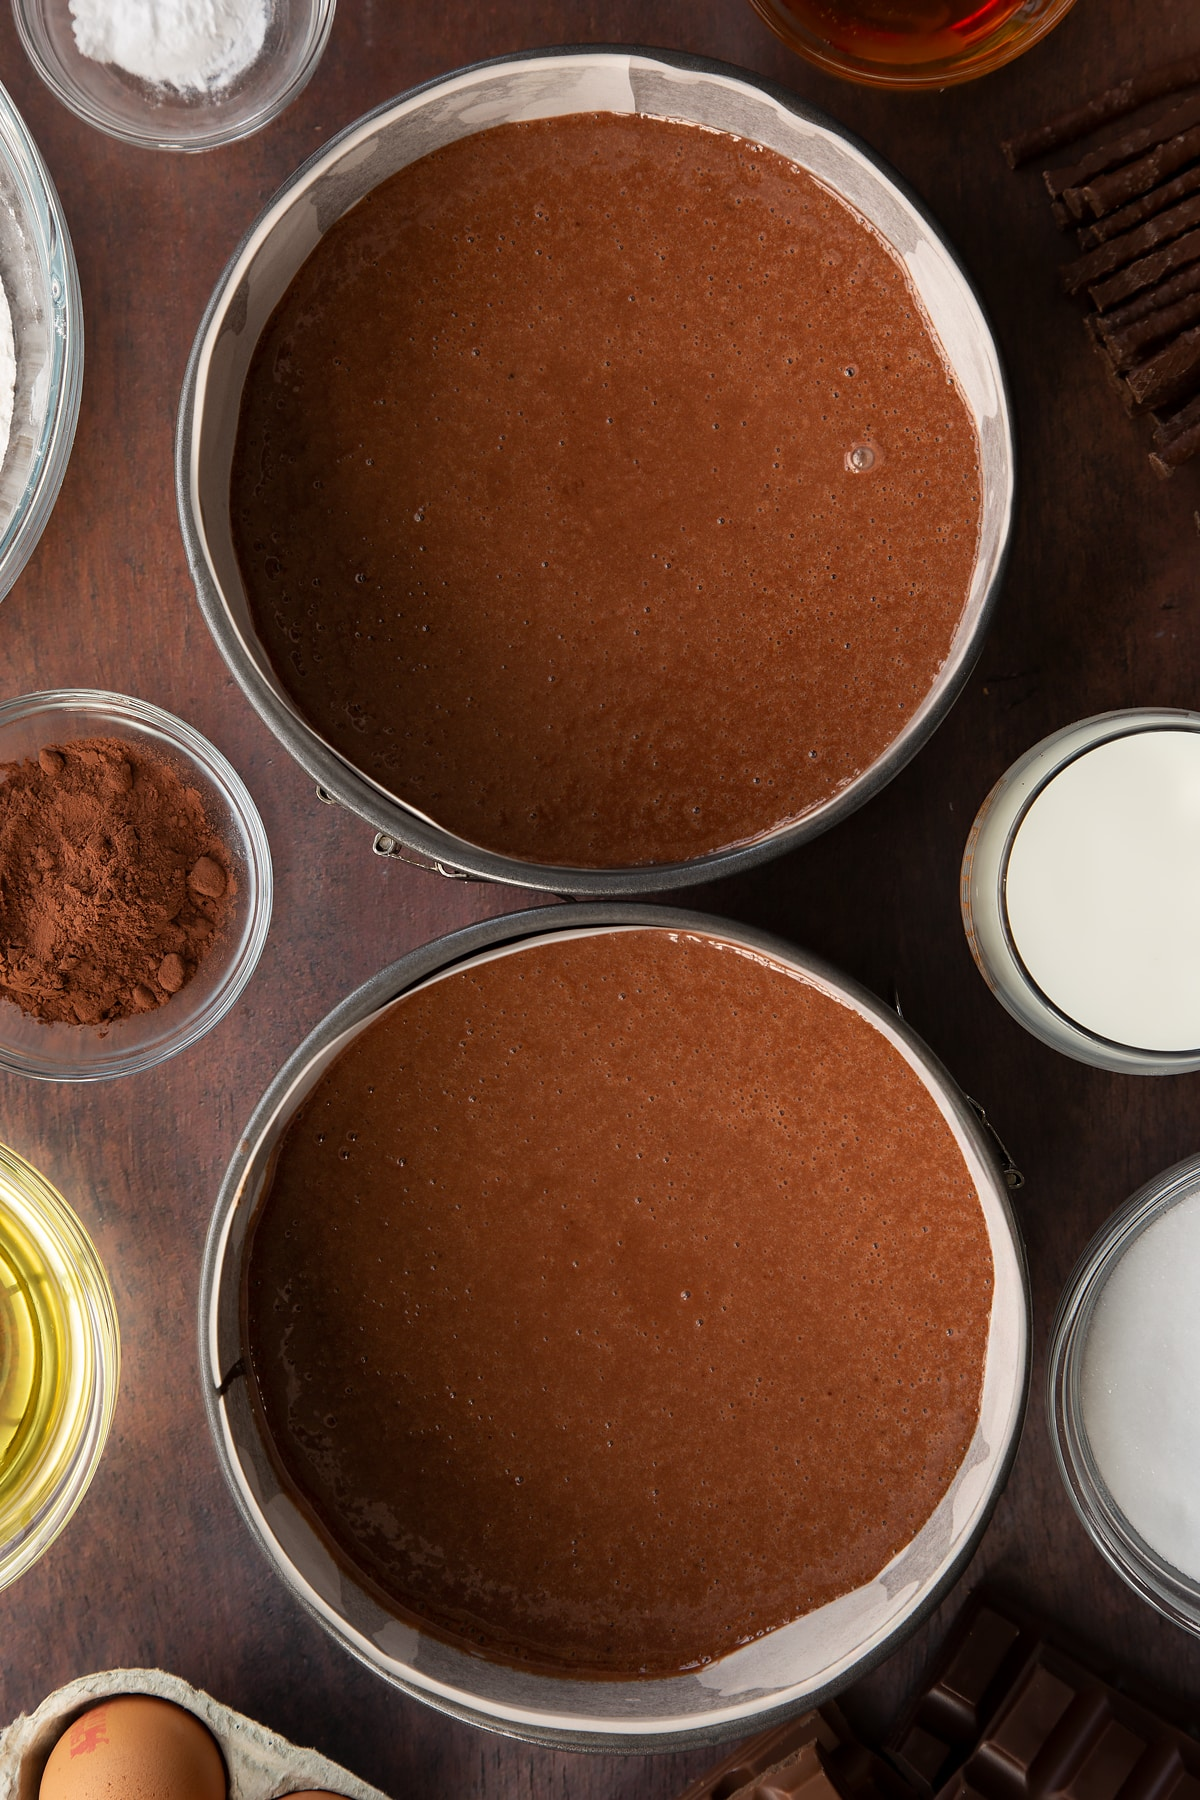 Chocolate cake batter in a two lined baking tins. Ingredients to make Matchmaker cake surround the tins.